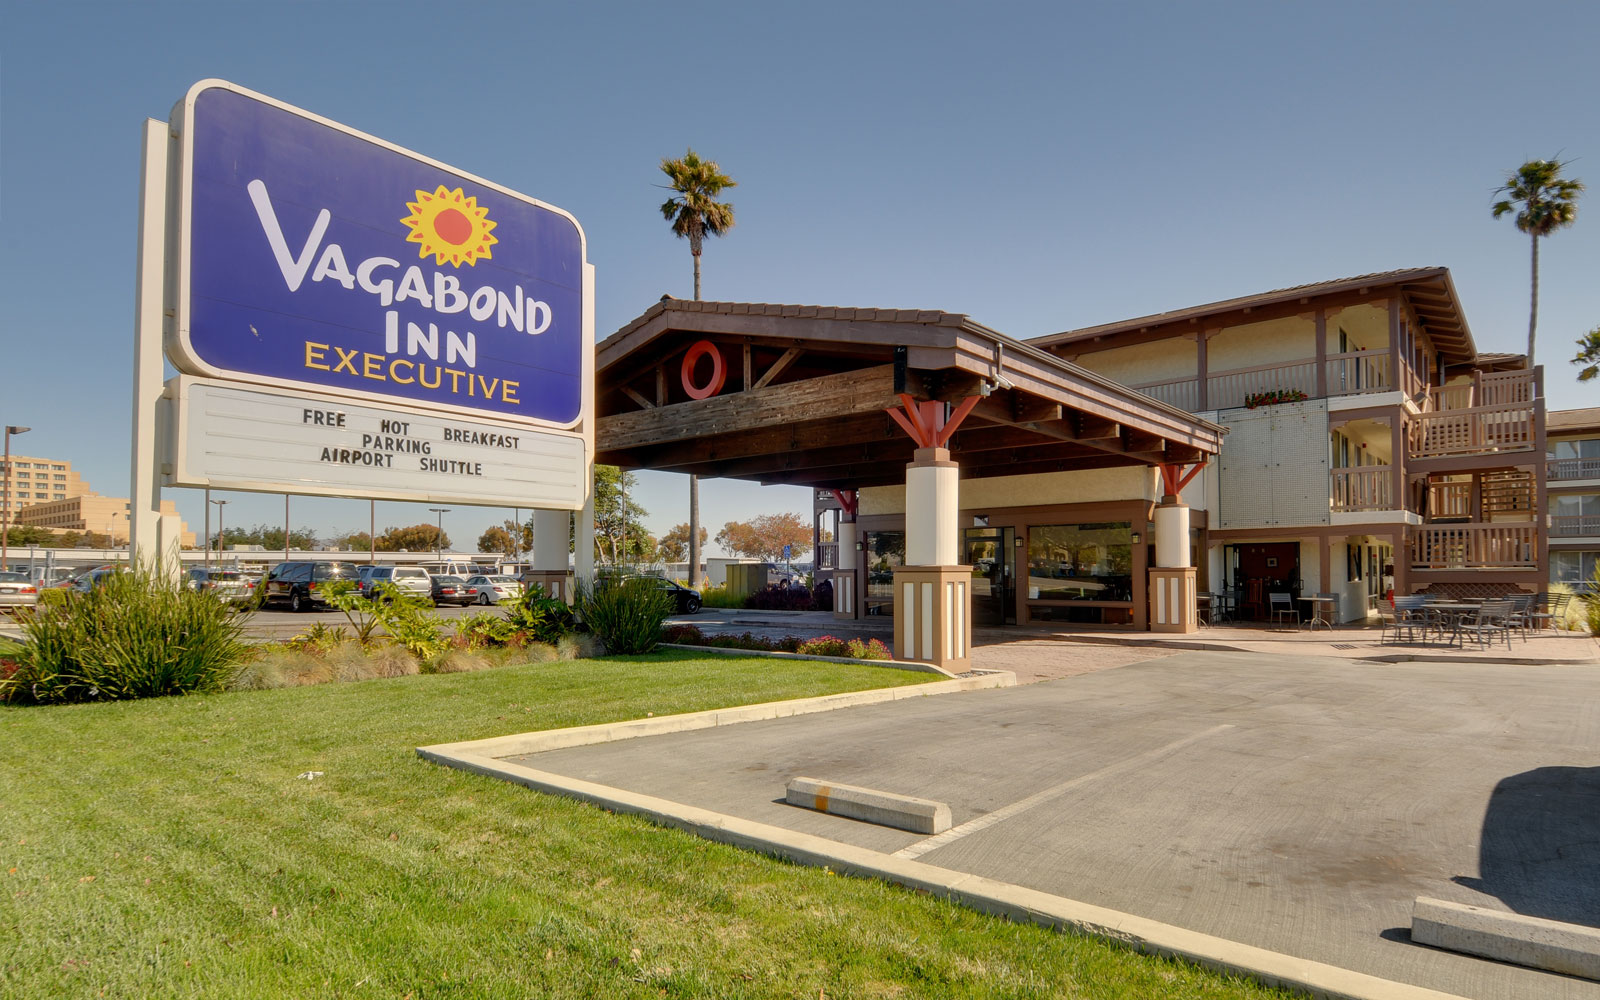 Burlingame CA Hotel - Vagabond Inn San Francisco Airport